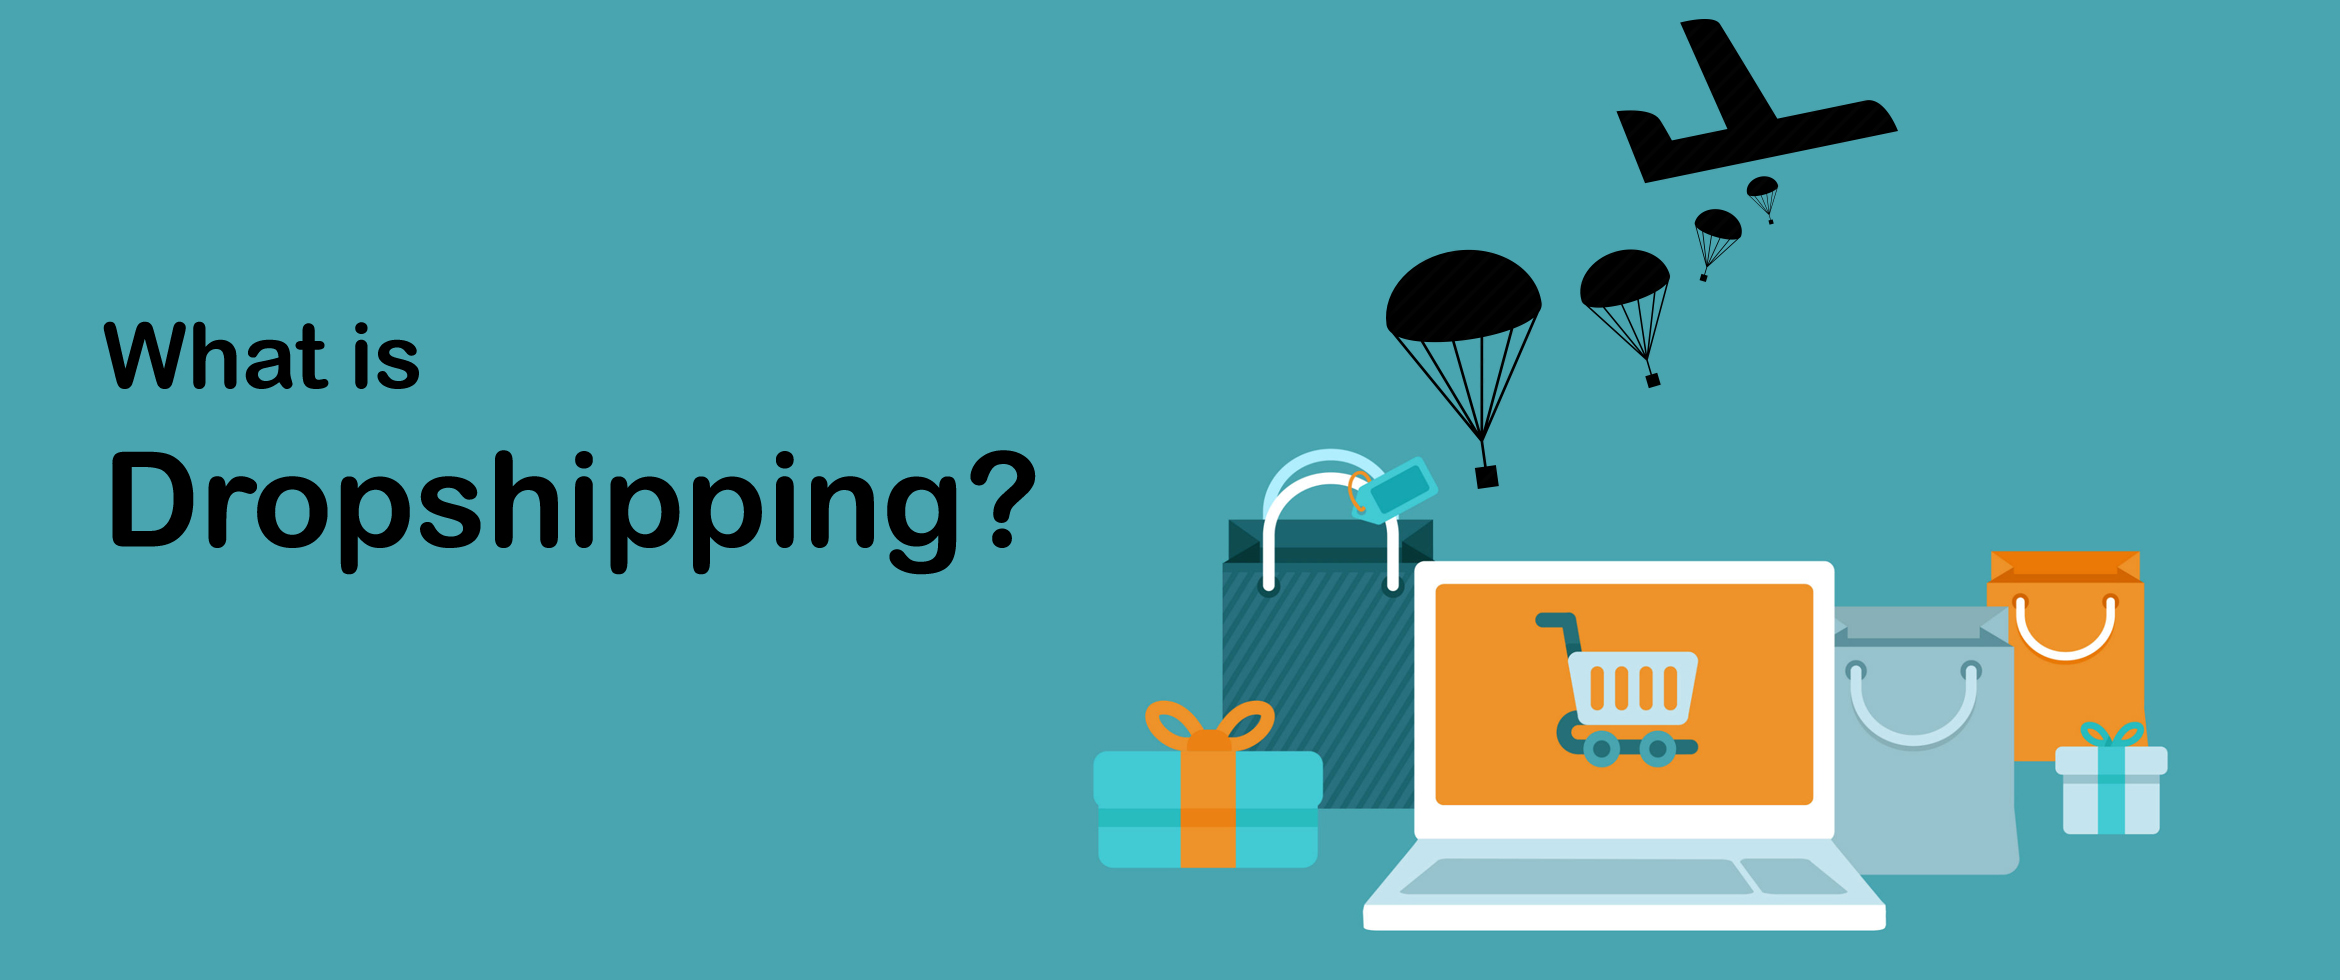 start dropshipping business  in 4 easy steps